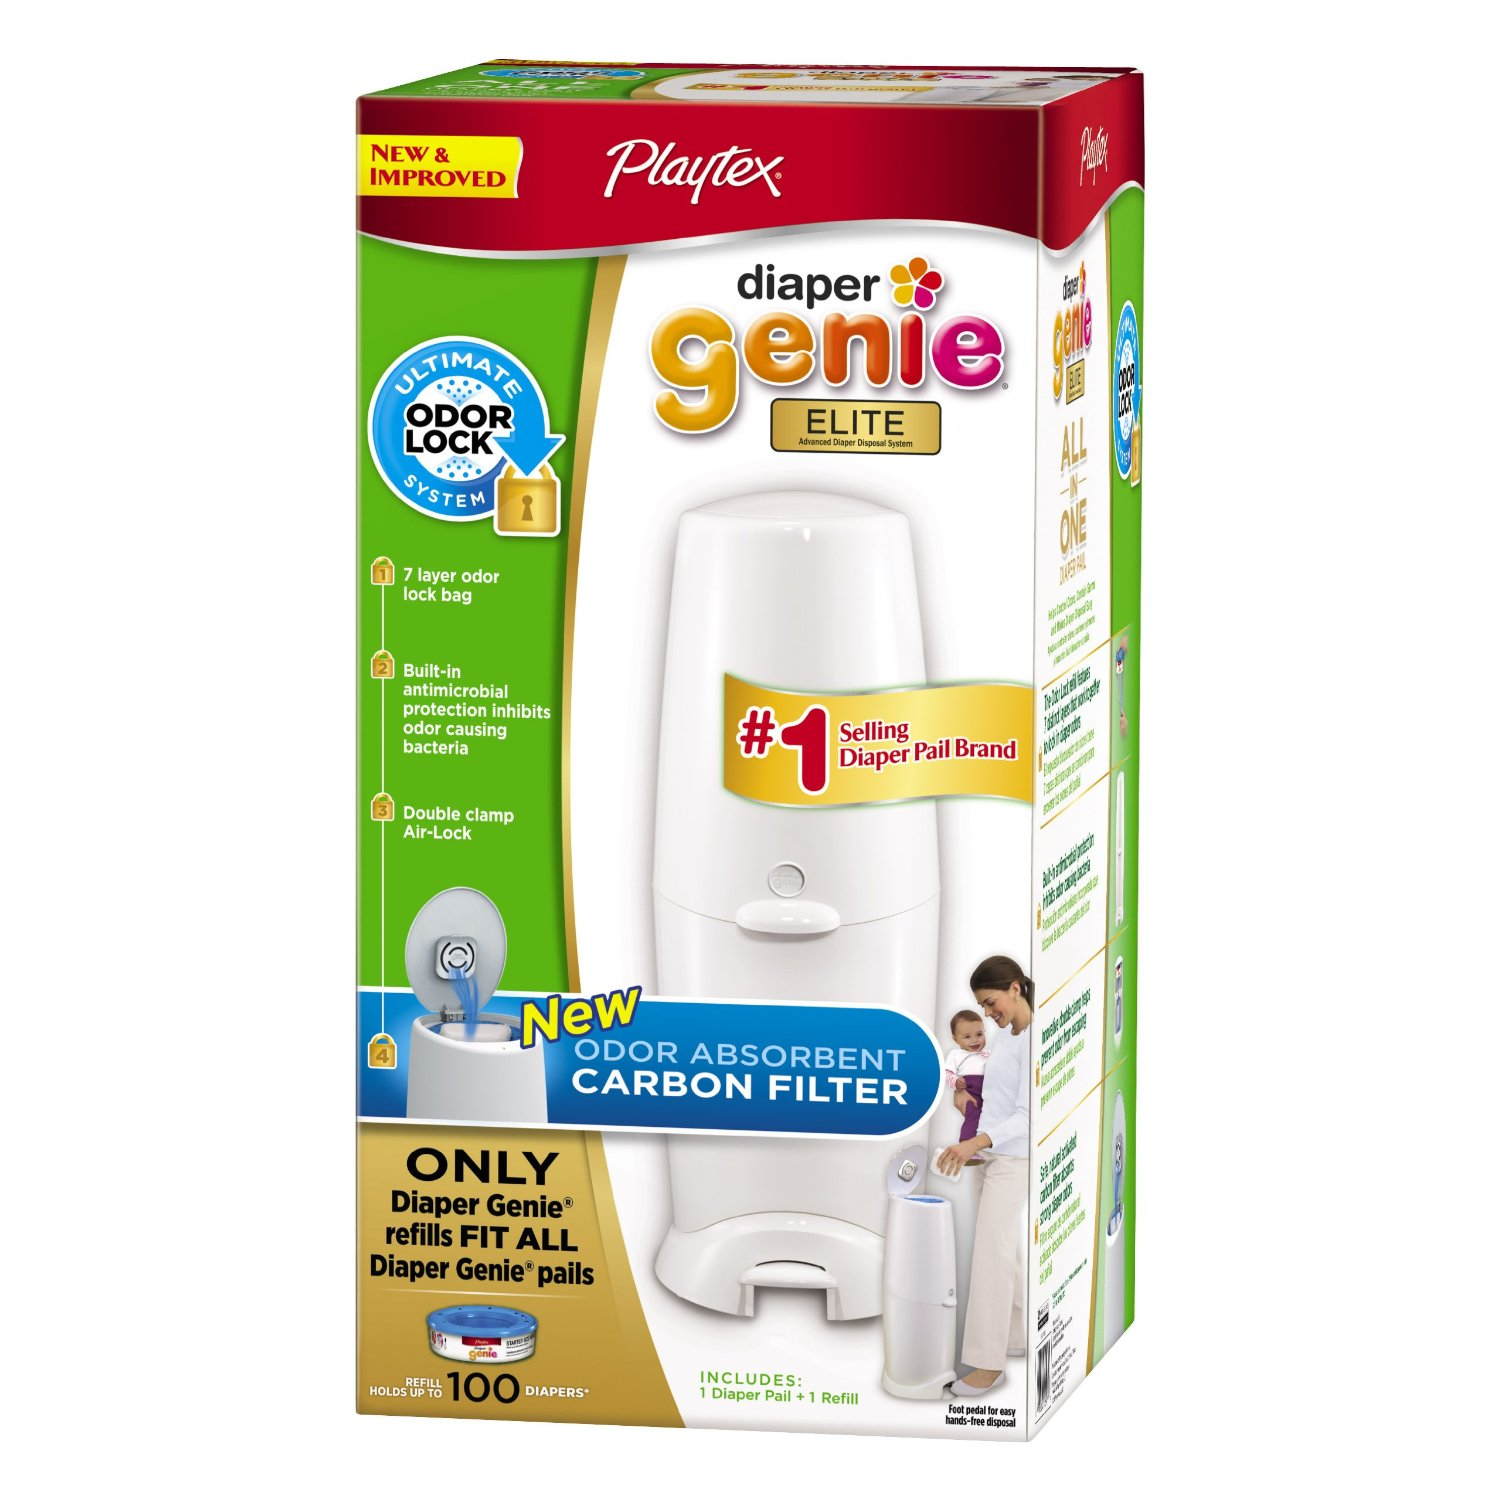 $26.47 Playtex Diaper Genie Elite Pail System with Odor Lock Carbon Filter, 100 Count